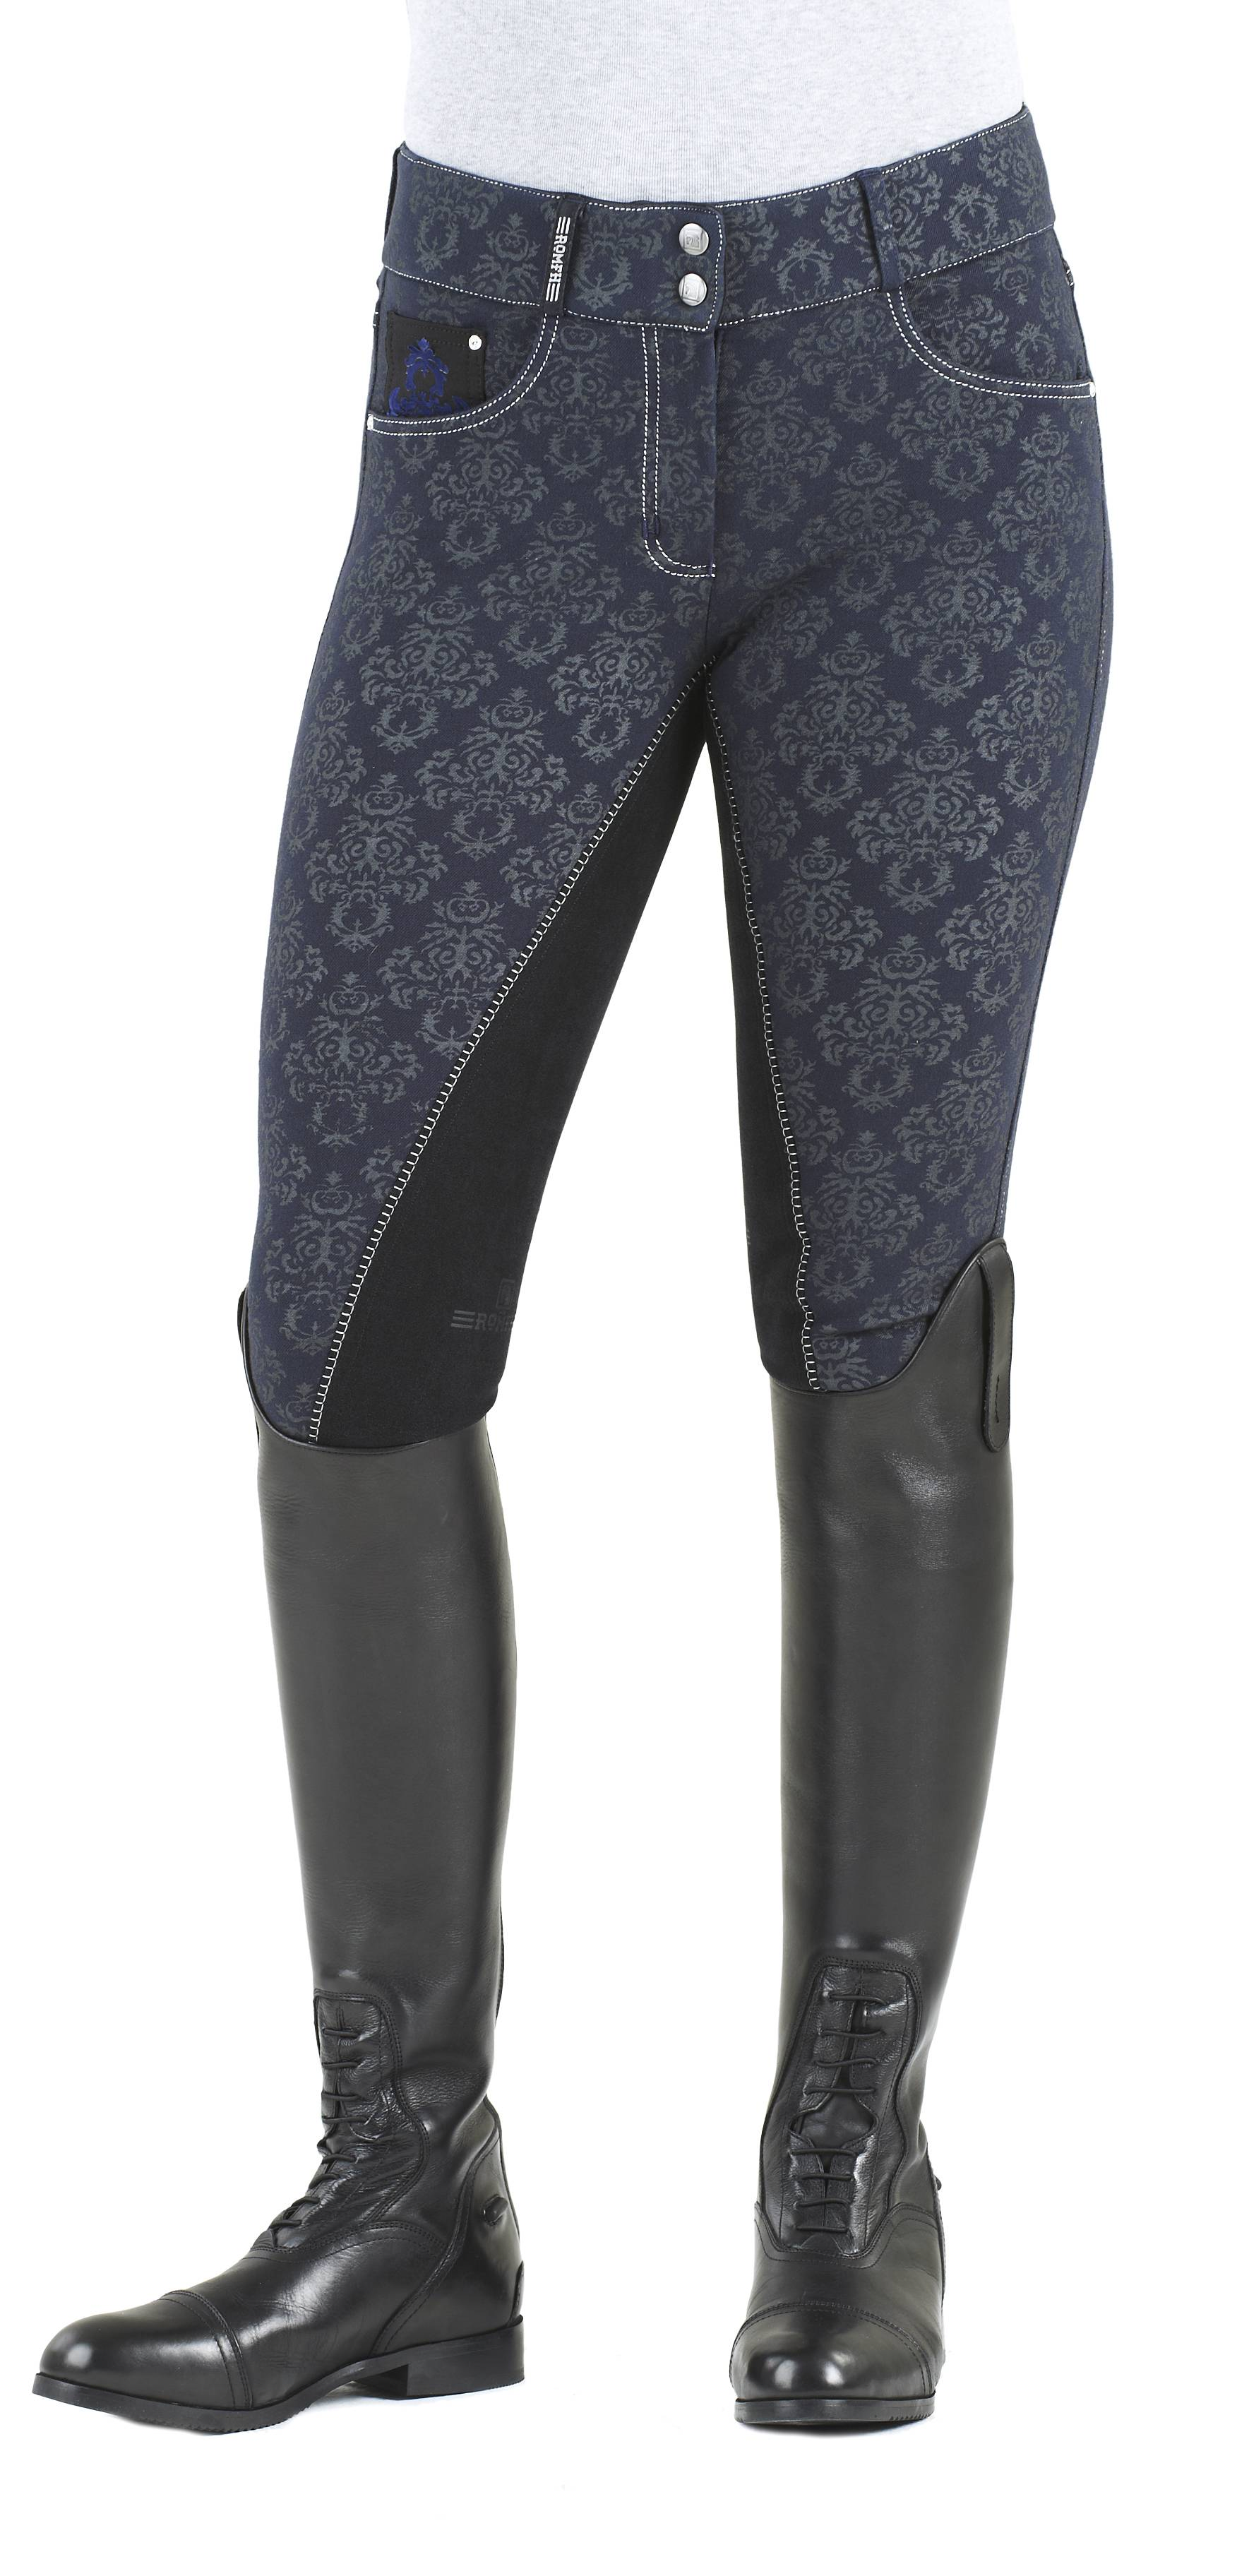 Romfh Baroque Print Full Seat Breech